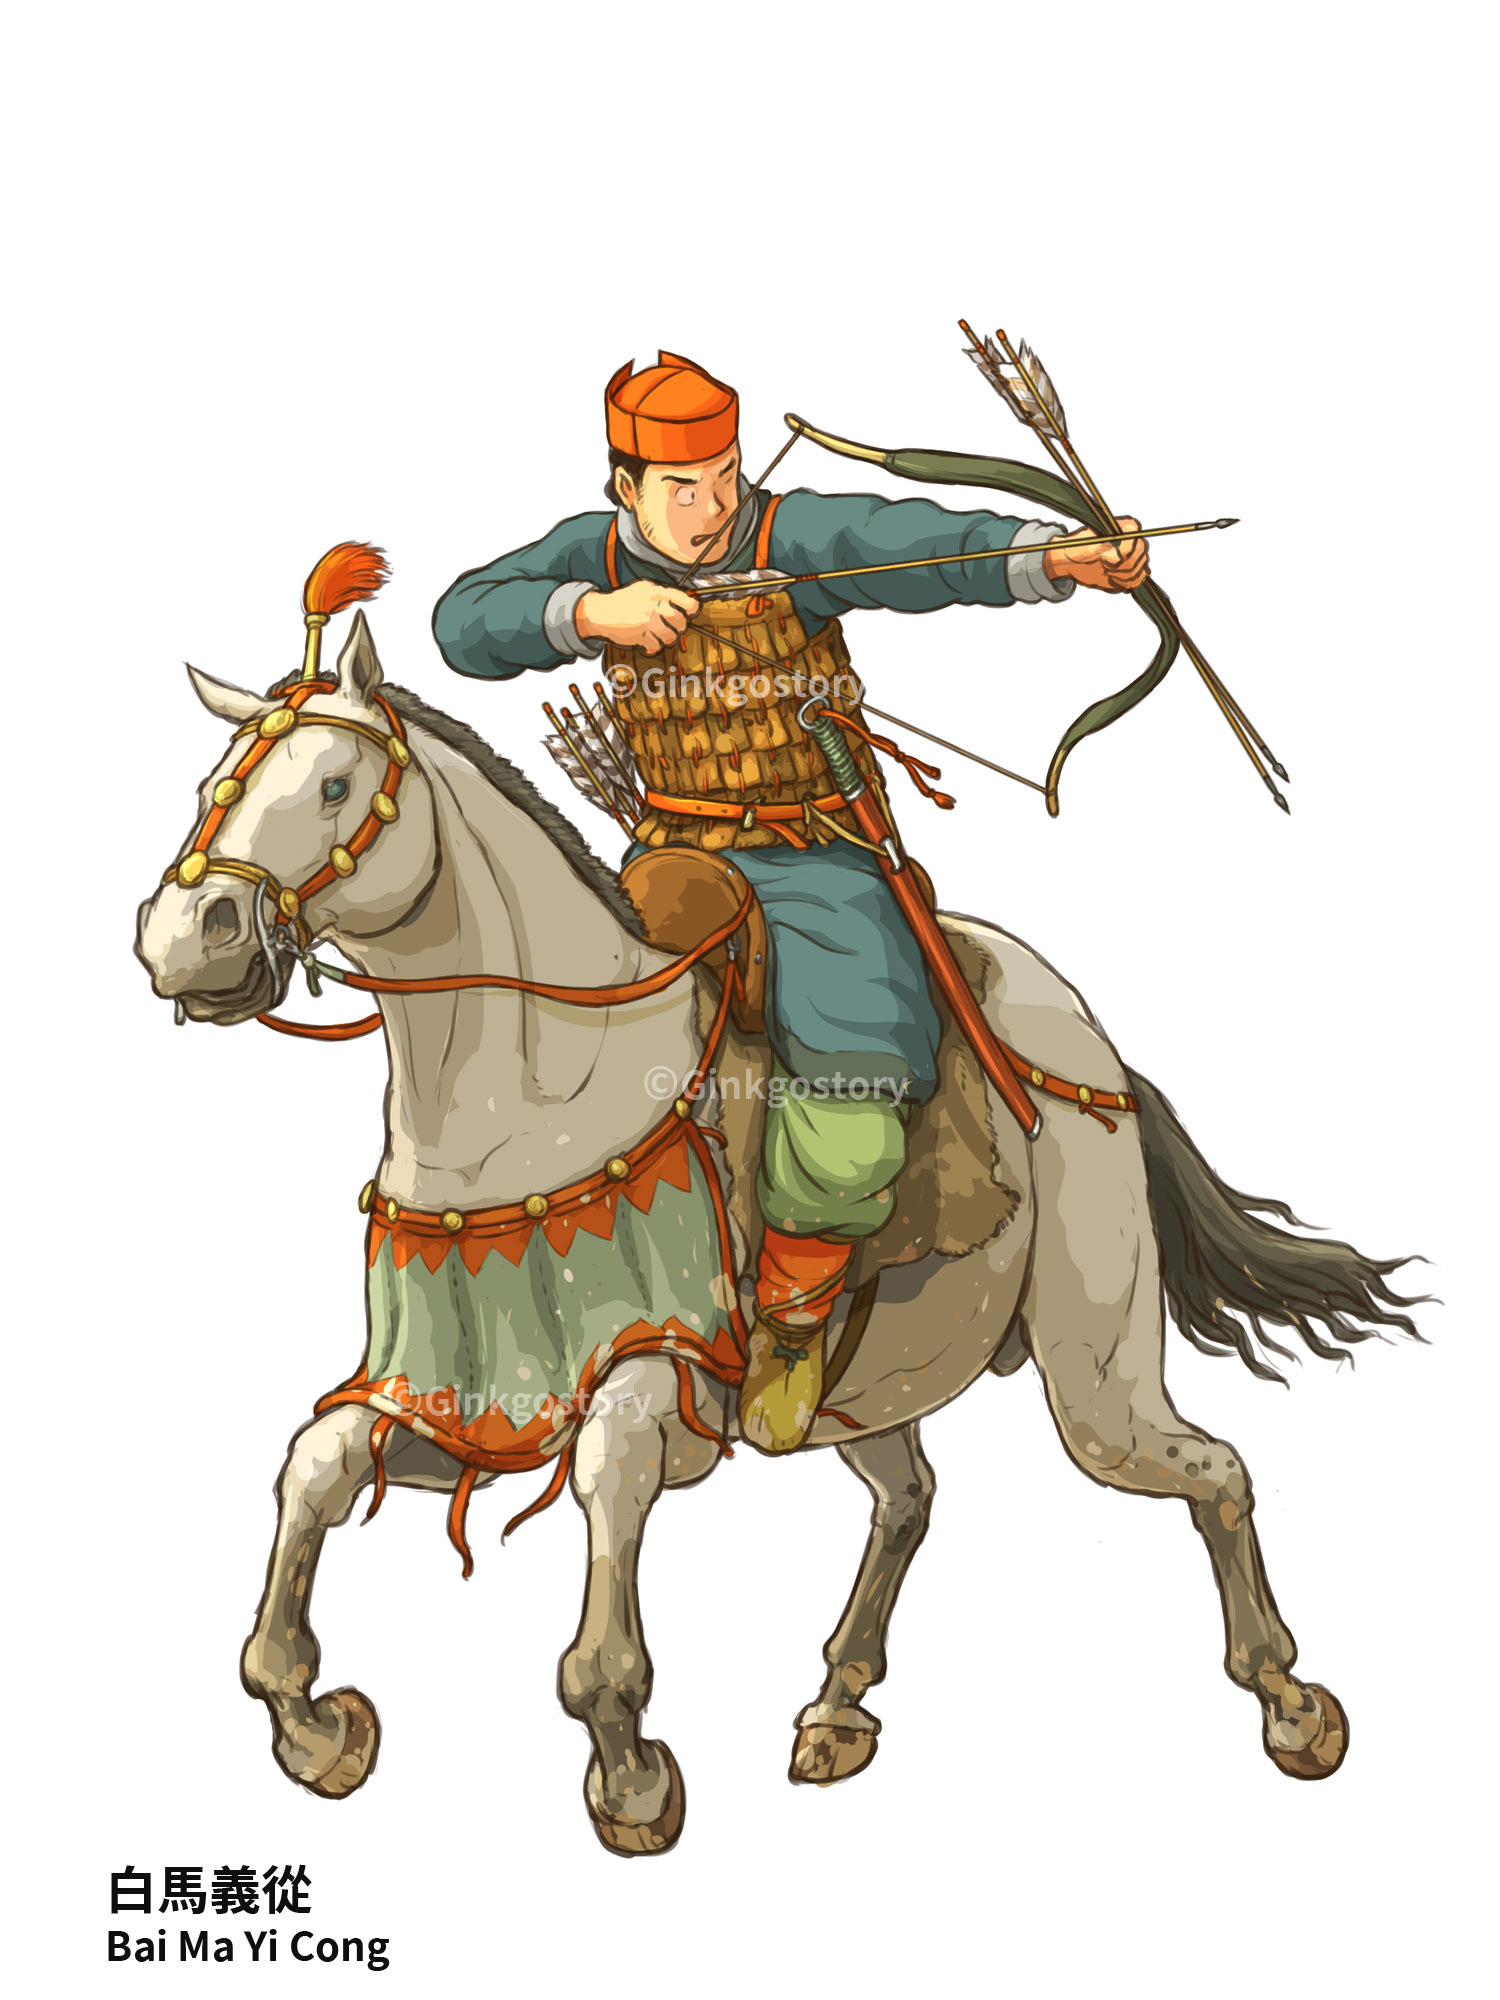 Three Kingdoms: Bai Ma Yi Cong